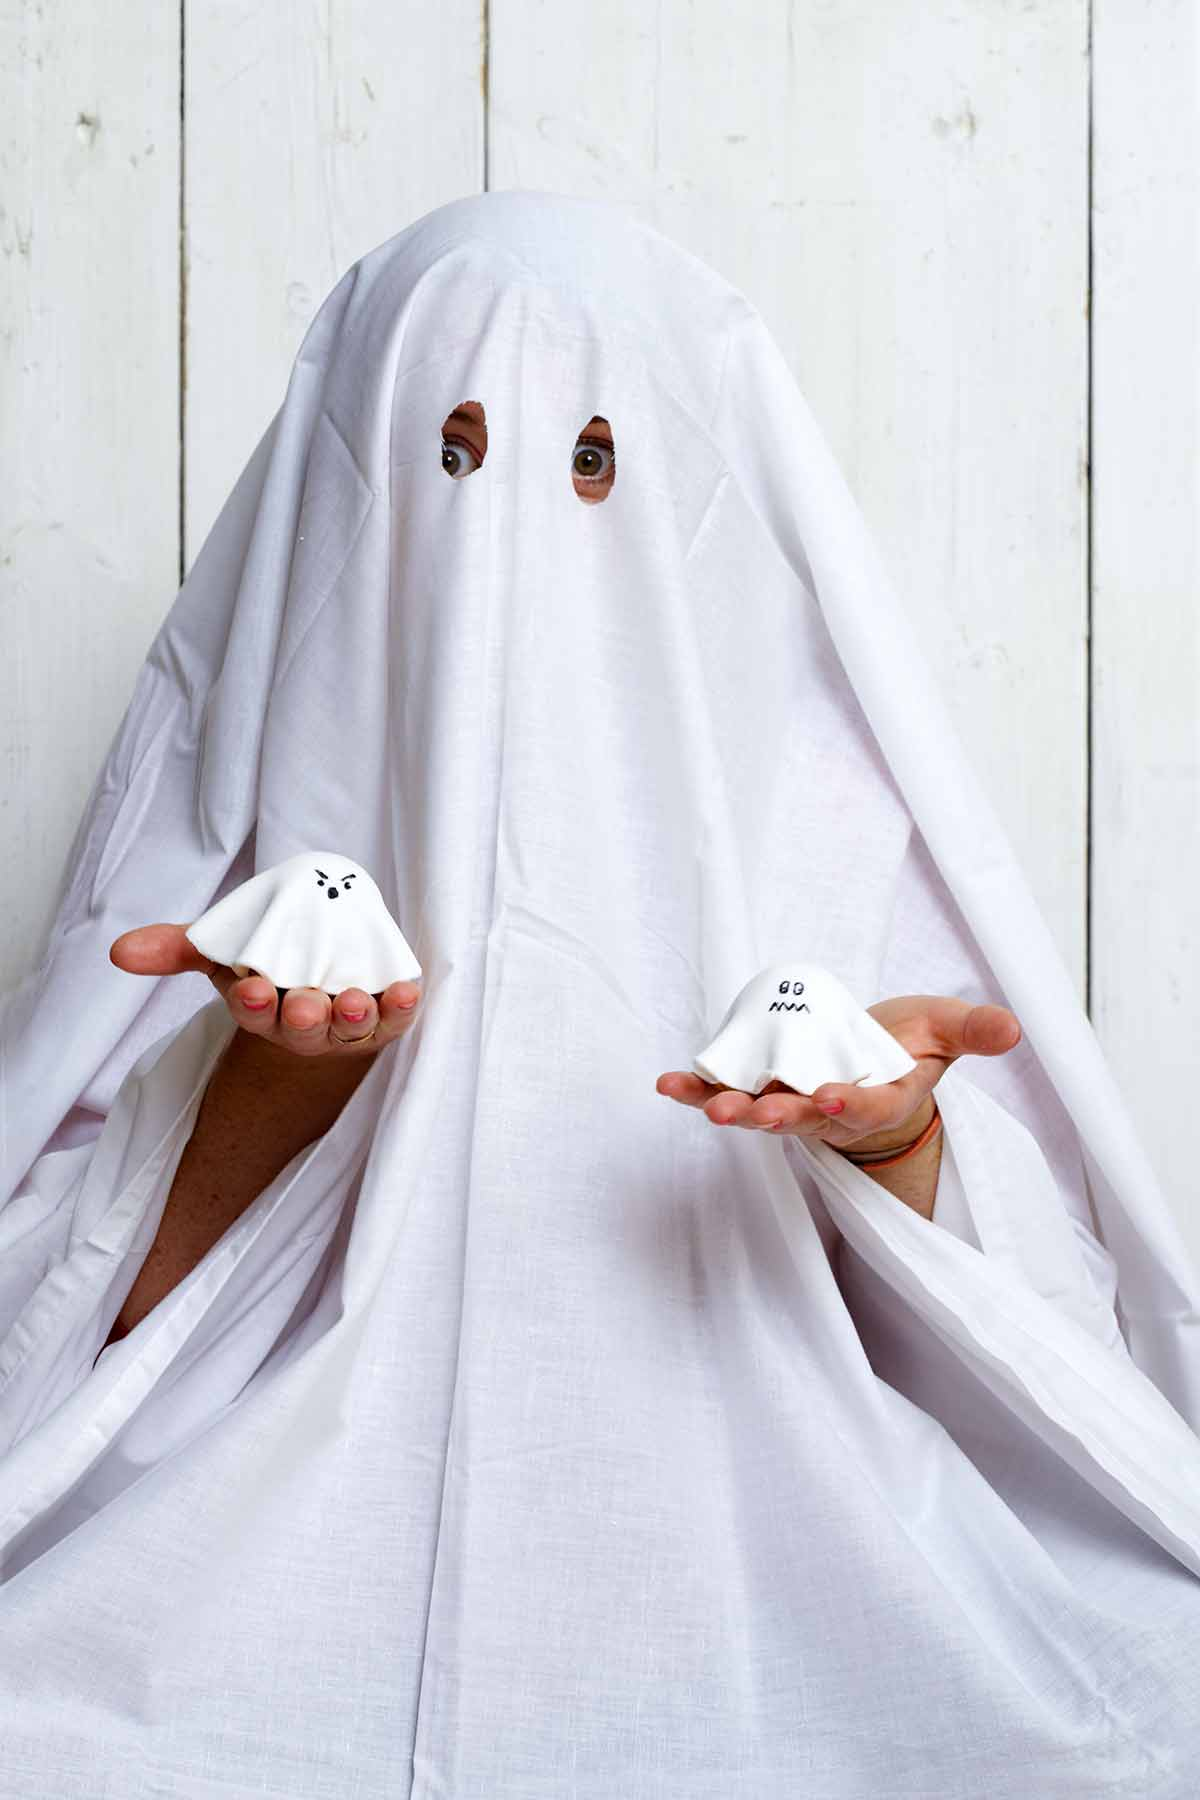 A child dressed as a ghost, holding a ghost cupcake in each hand.